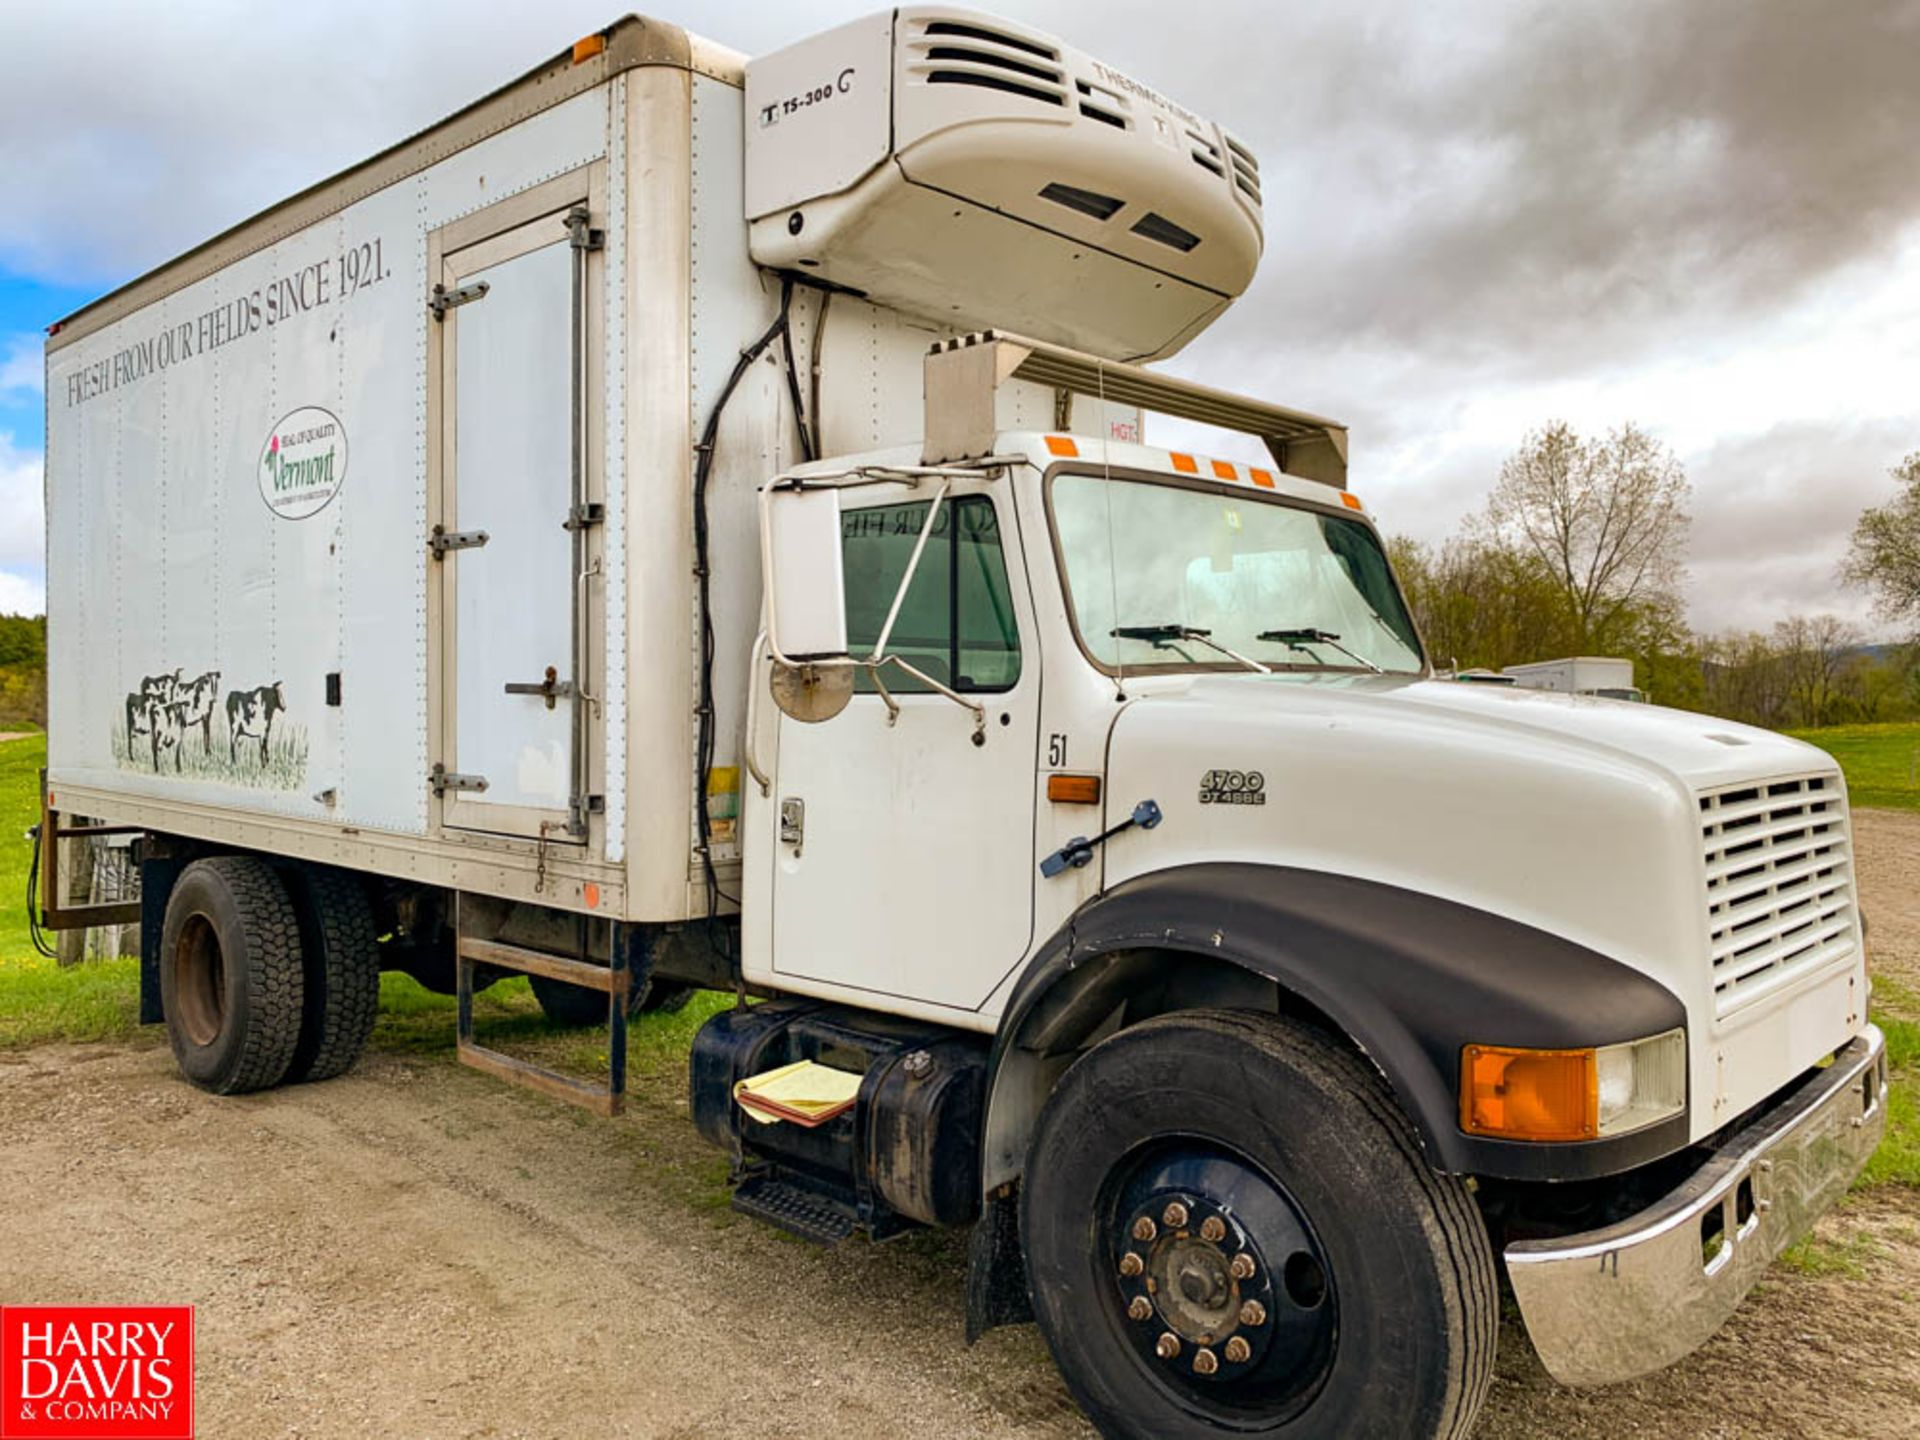 2000 International 18' Refrigerated Delivery Truck Model: 4700, 25,500 GVWR, with DT466E Diesel, - Image 2 of 7